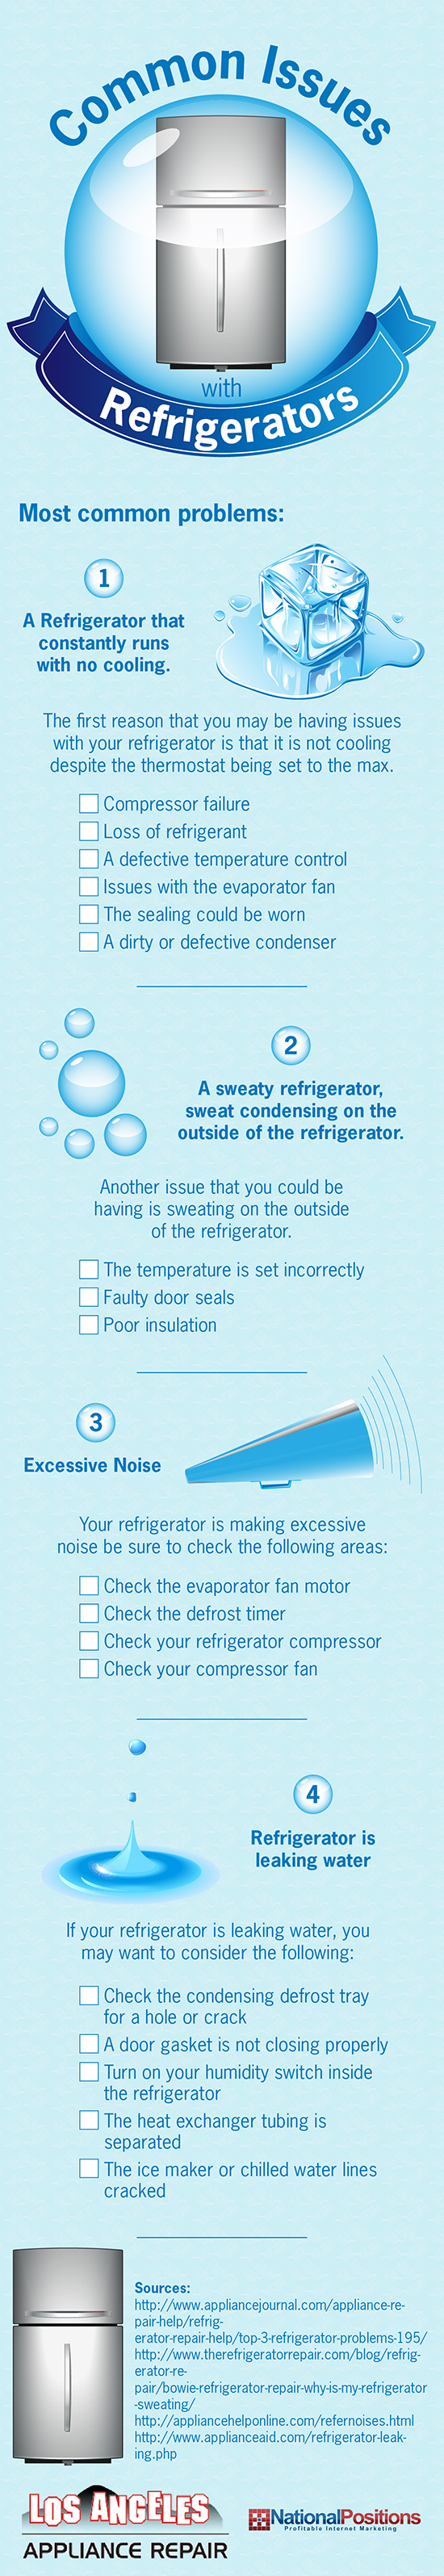 Common Issues With Refrigerators